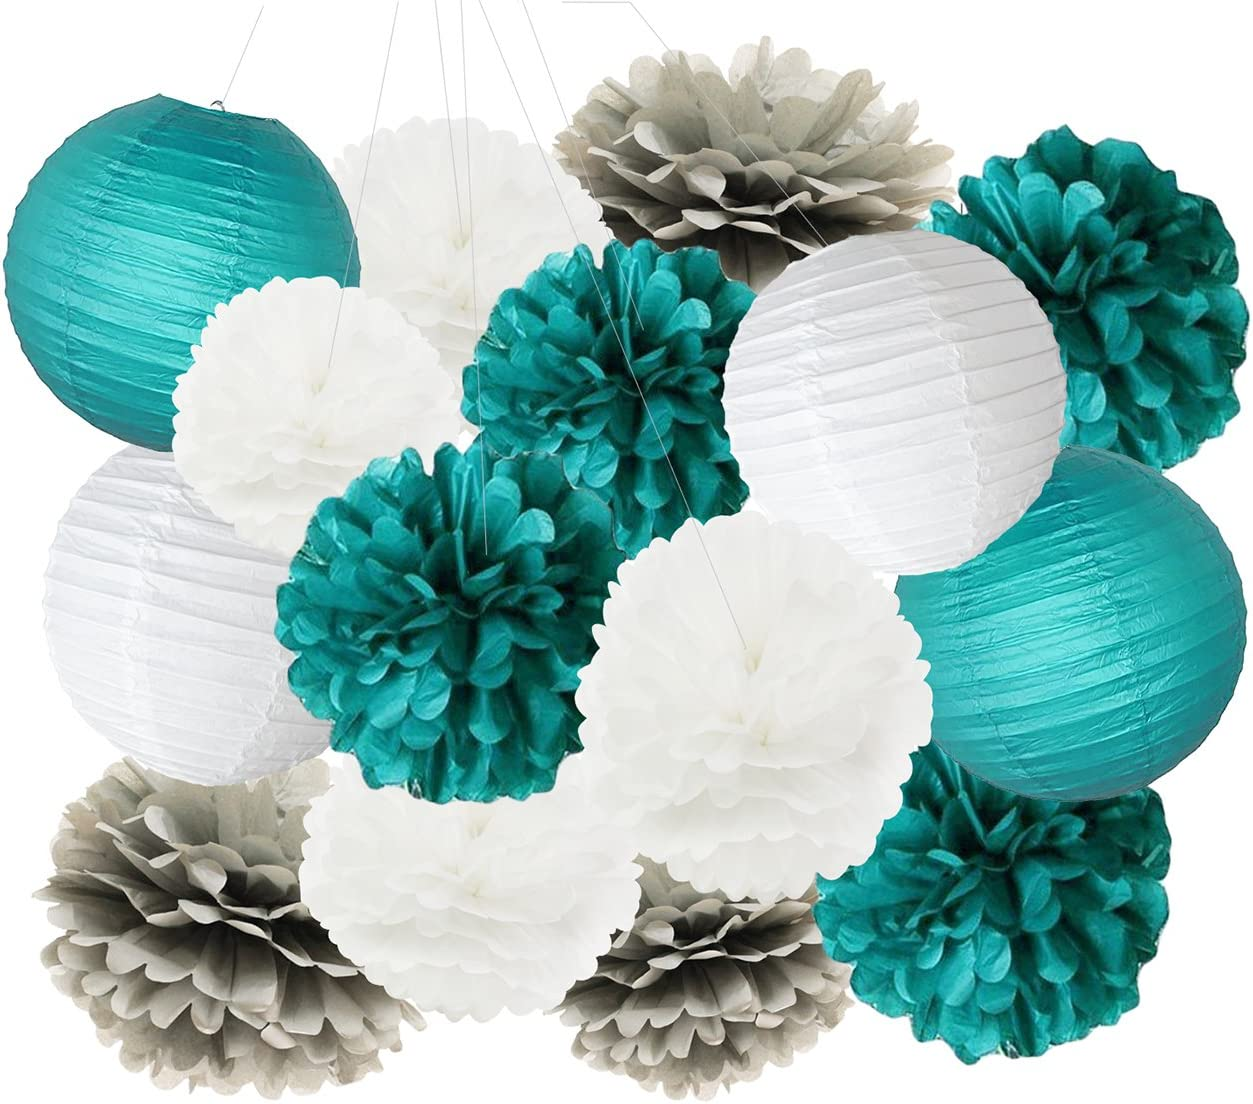 Teal Bridal Shower Decorations White Teal Grey Tissue Paper Pom Pom Paper Lanterns Teal Themed Party Wedding Teal Blue Baby Shower Teal Sweet 16 Birthday Party Decorations Mermaid Party Supplies